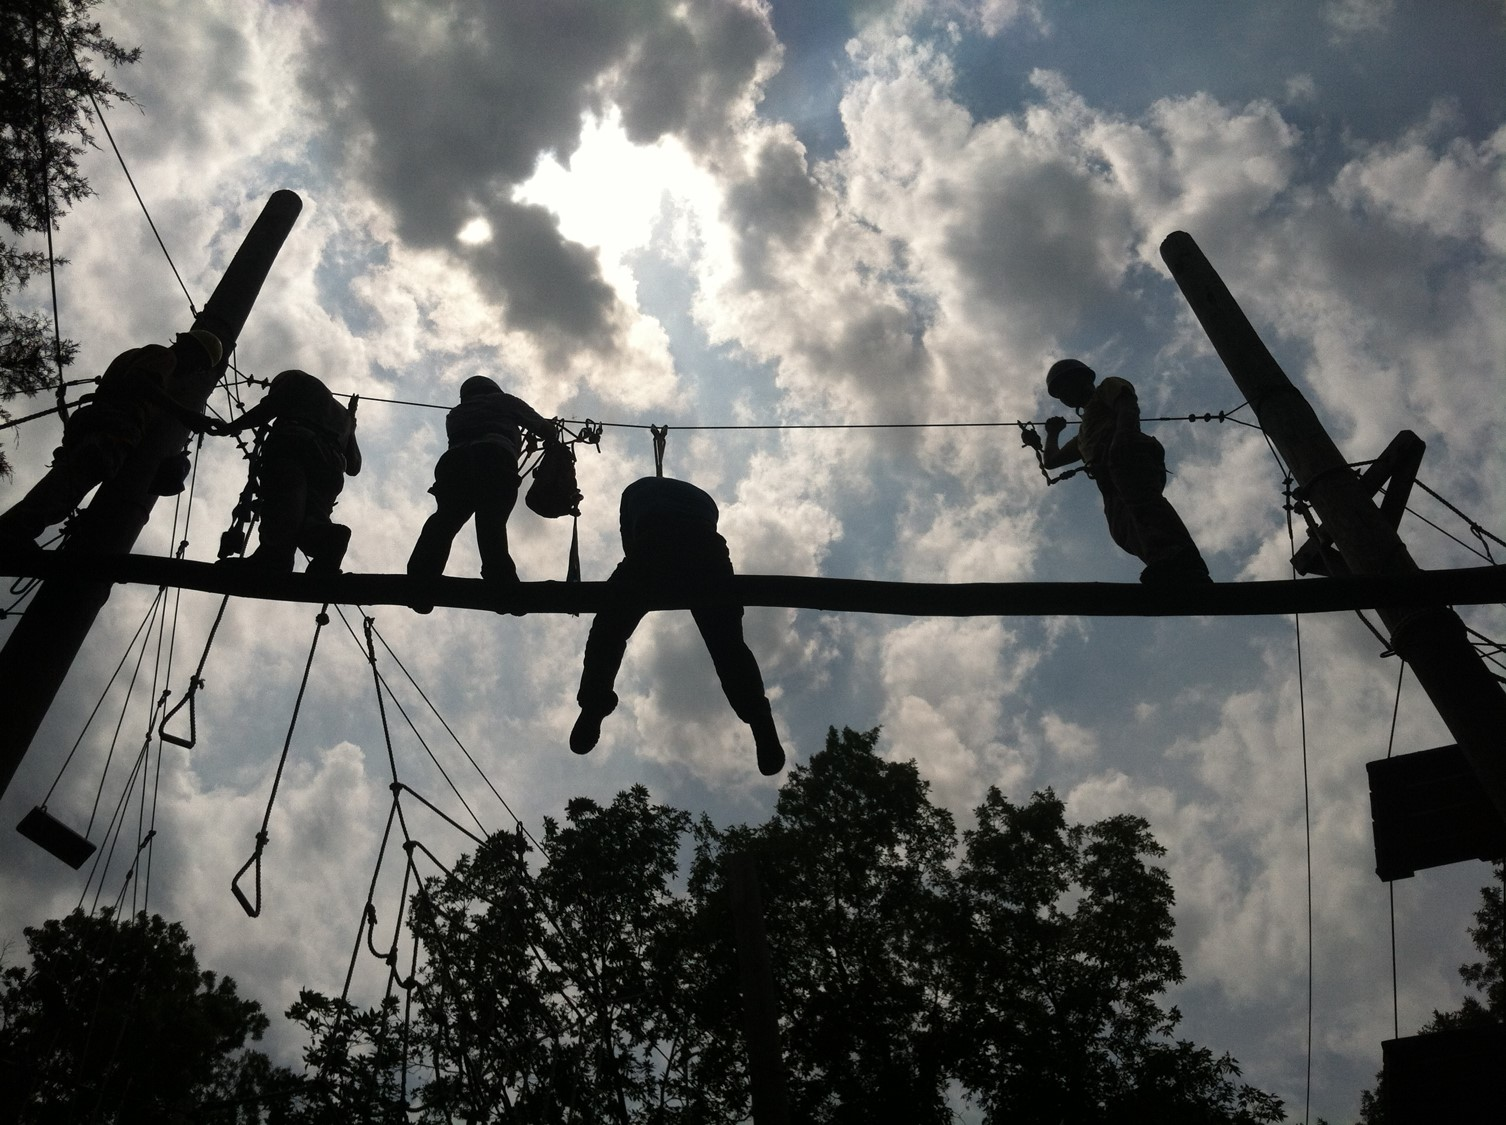 high-ropes course